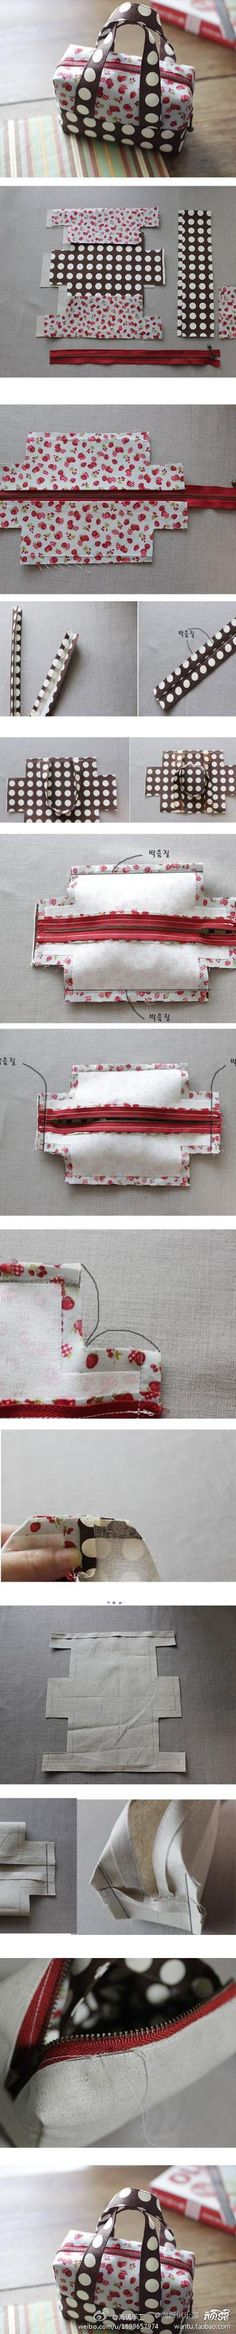 DIY Lunch Bag DIY Projects | UsefulDIY.com